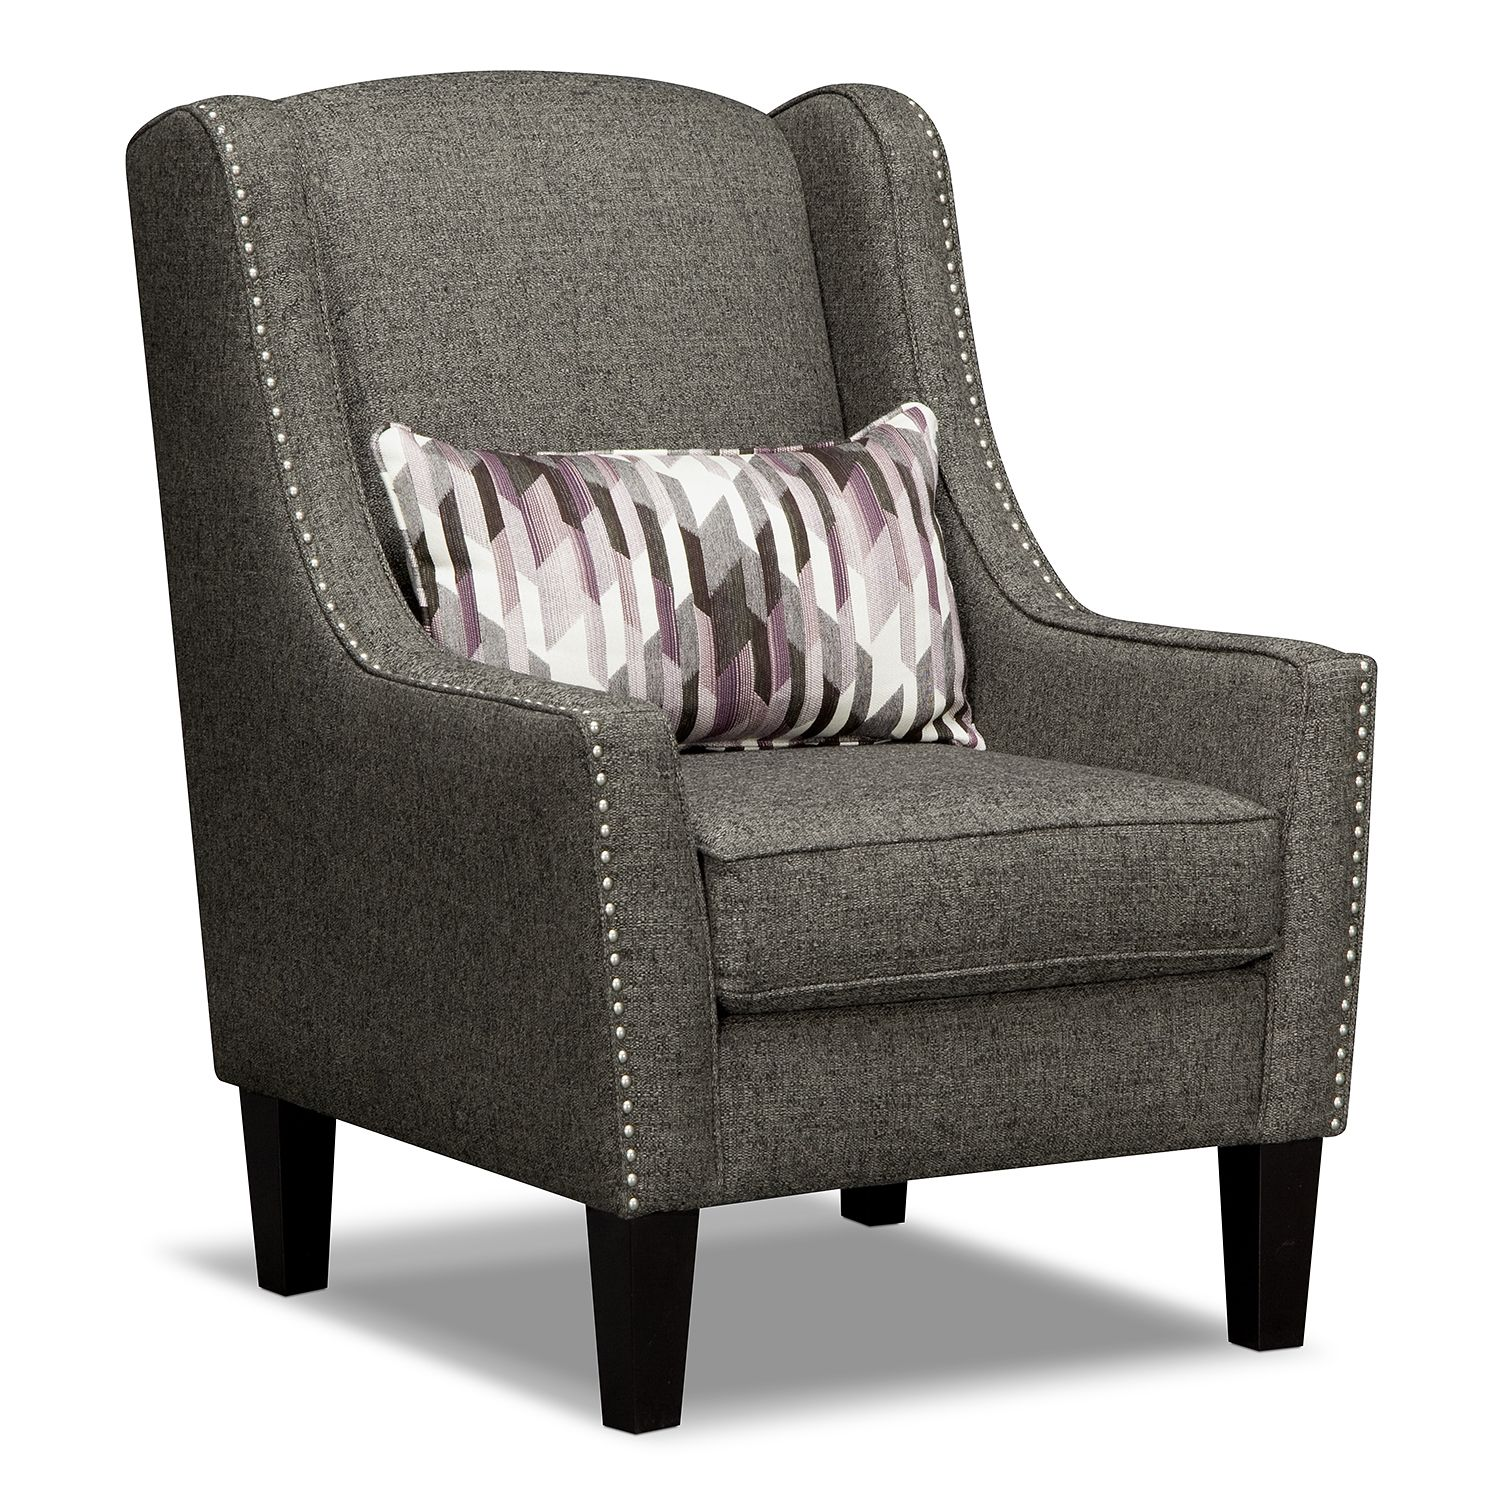 Furniture Unique Small Accent Chairs With Arms Decor For ChairsLiving Room